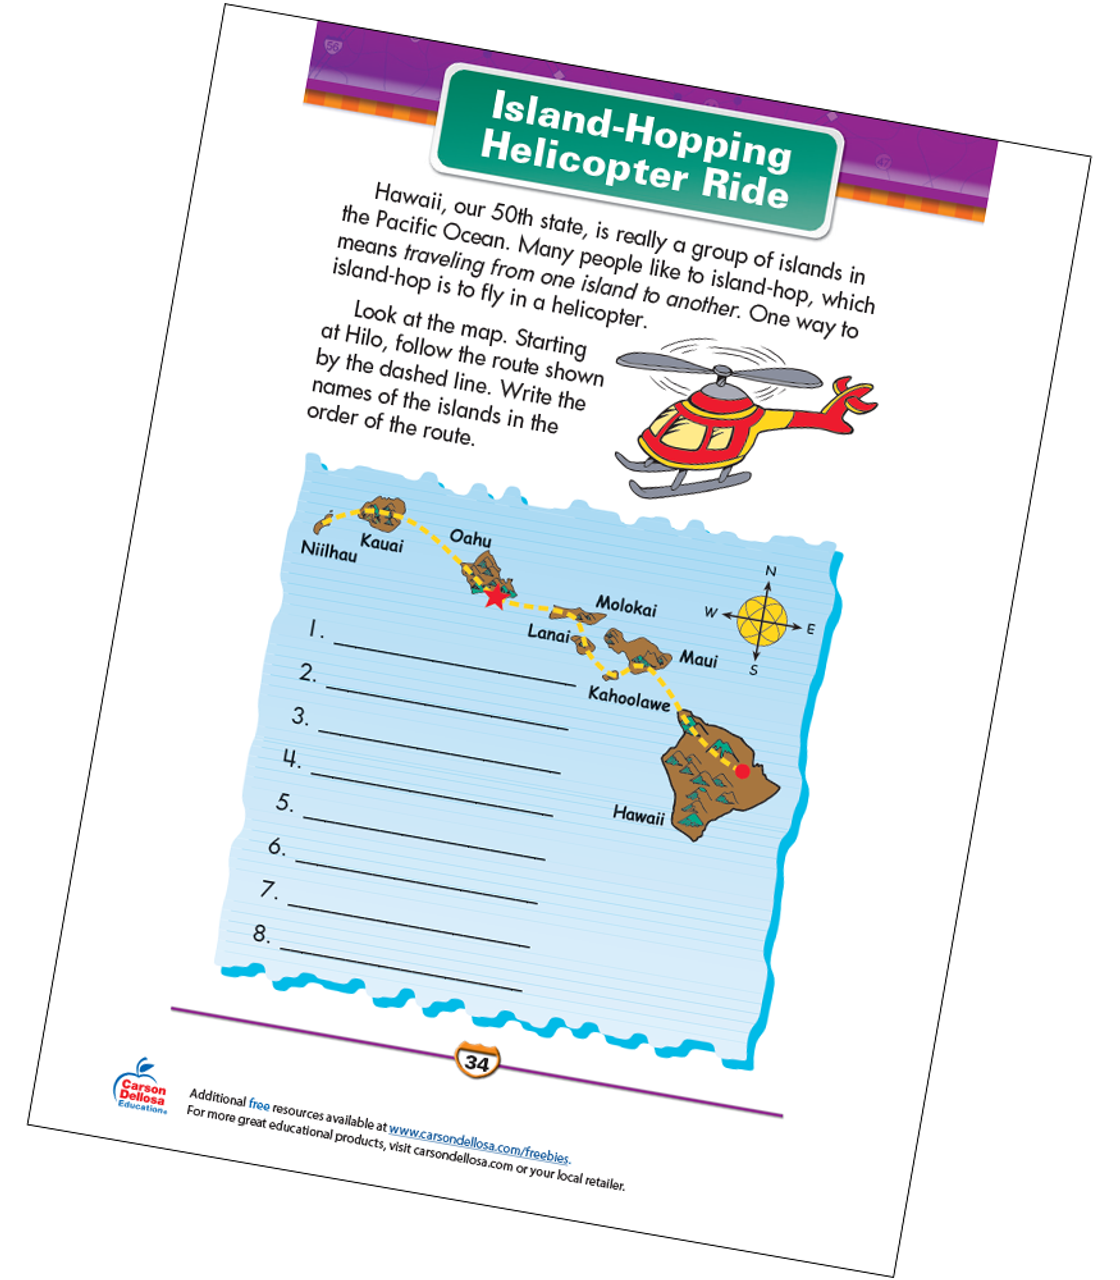 photograph regarding Printable Map of Hawaiian Islands identify Island-Hopping Helicopter Journey Absolutely free Printable Carson Dellosa